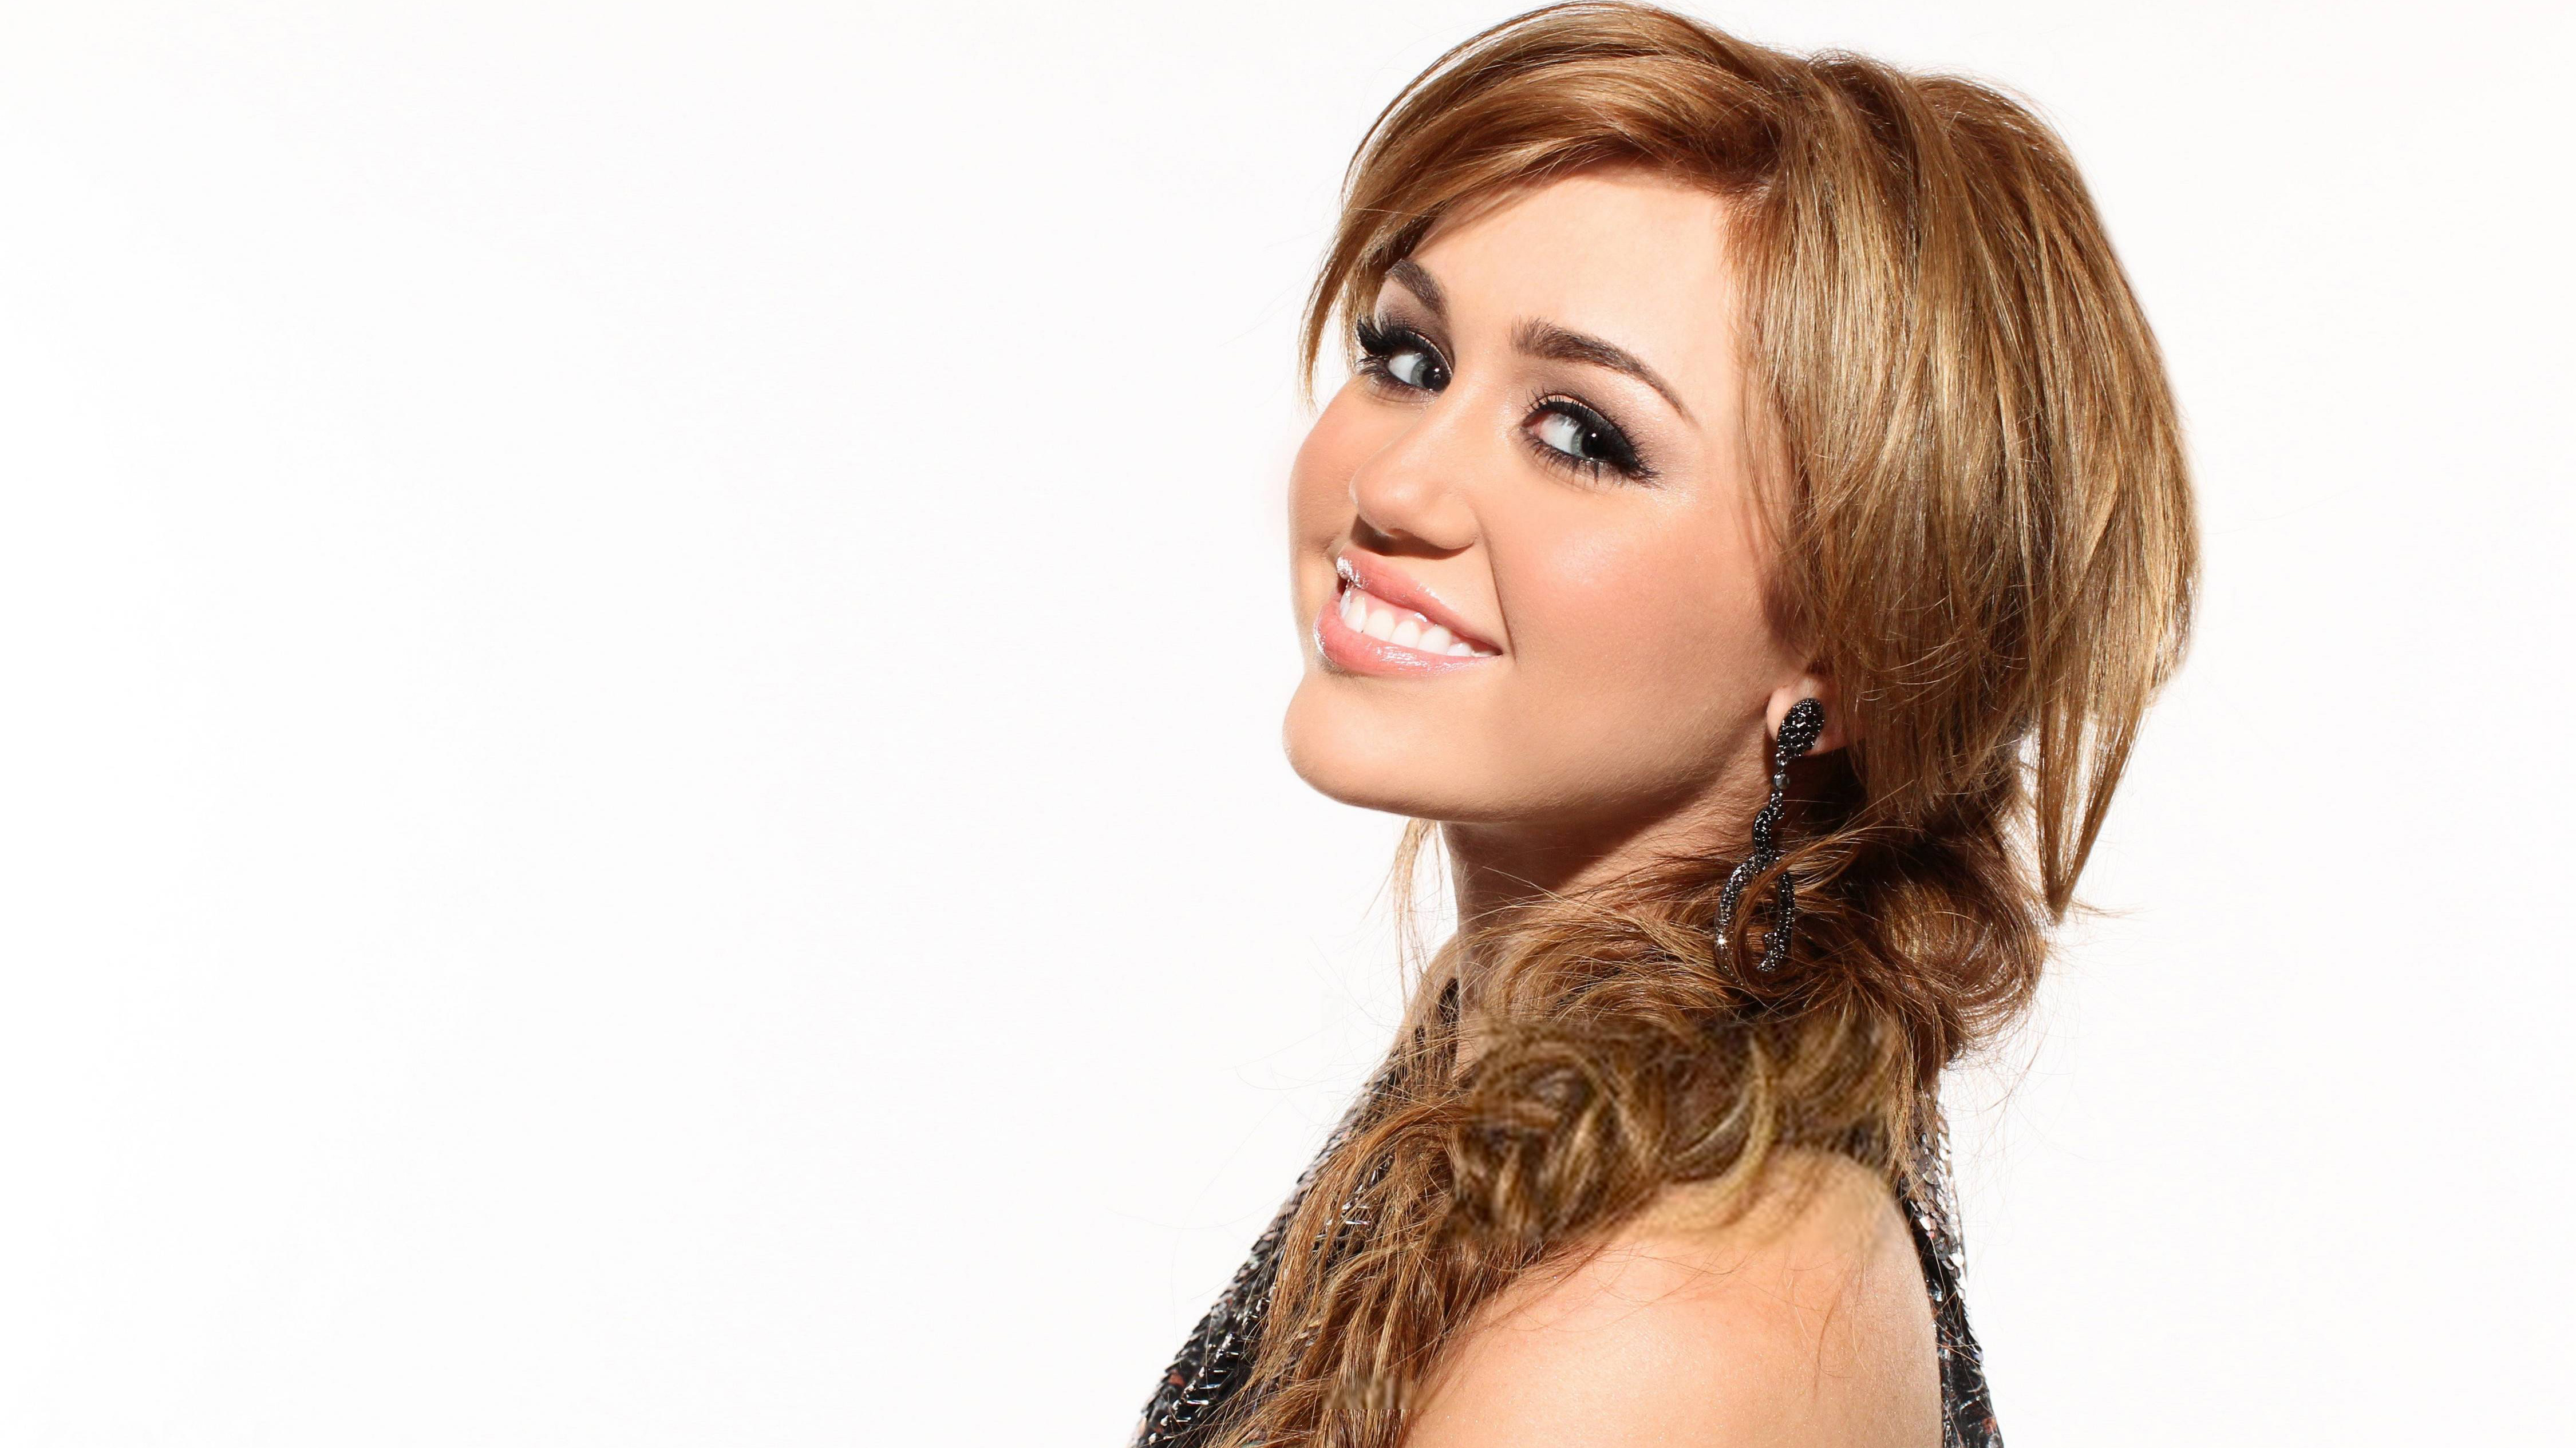 Miley Cyrus Wallpapers Top Free Miley Cyrus Backgrounds